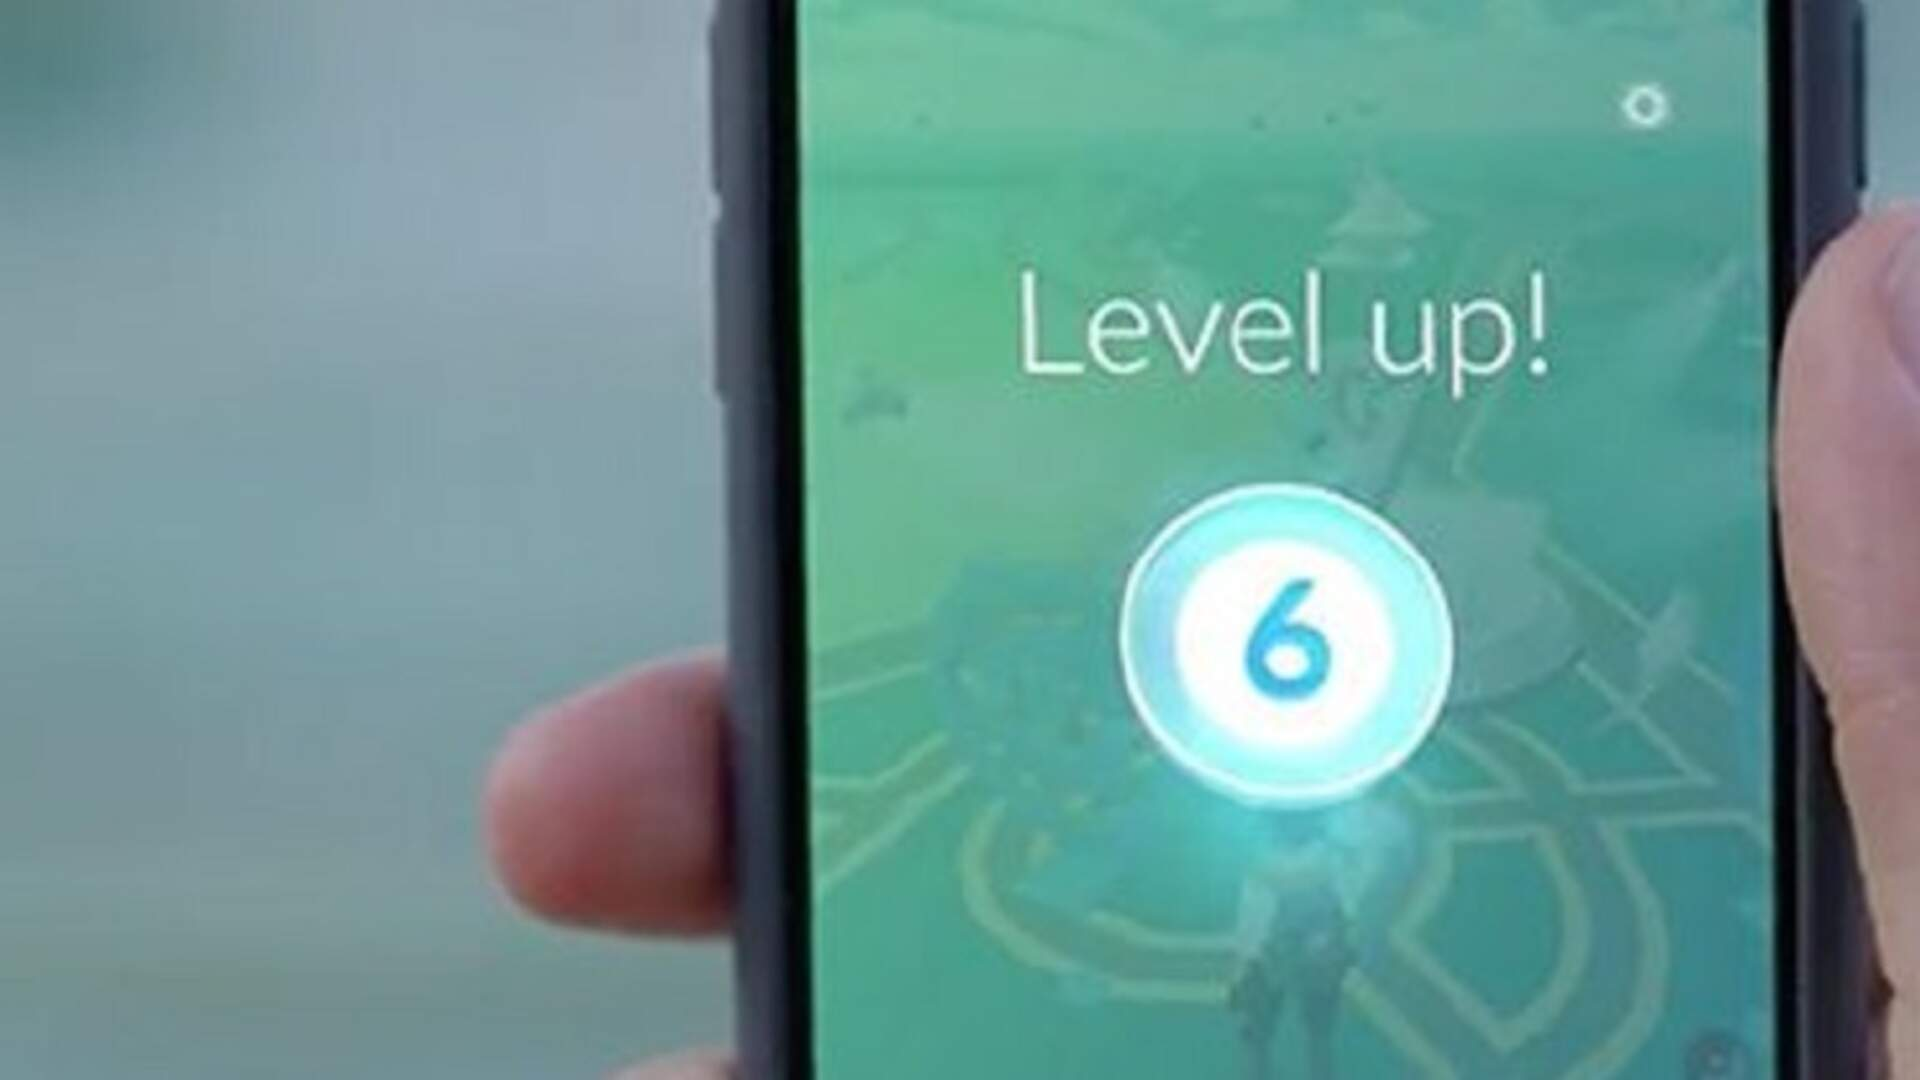 Pokémon Go Level Up Rewards List - Reward Items, Max Level Cap